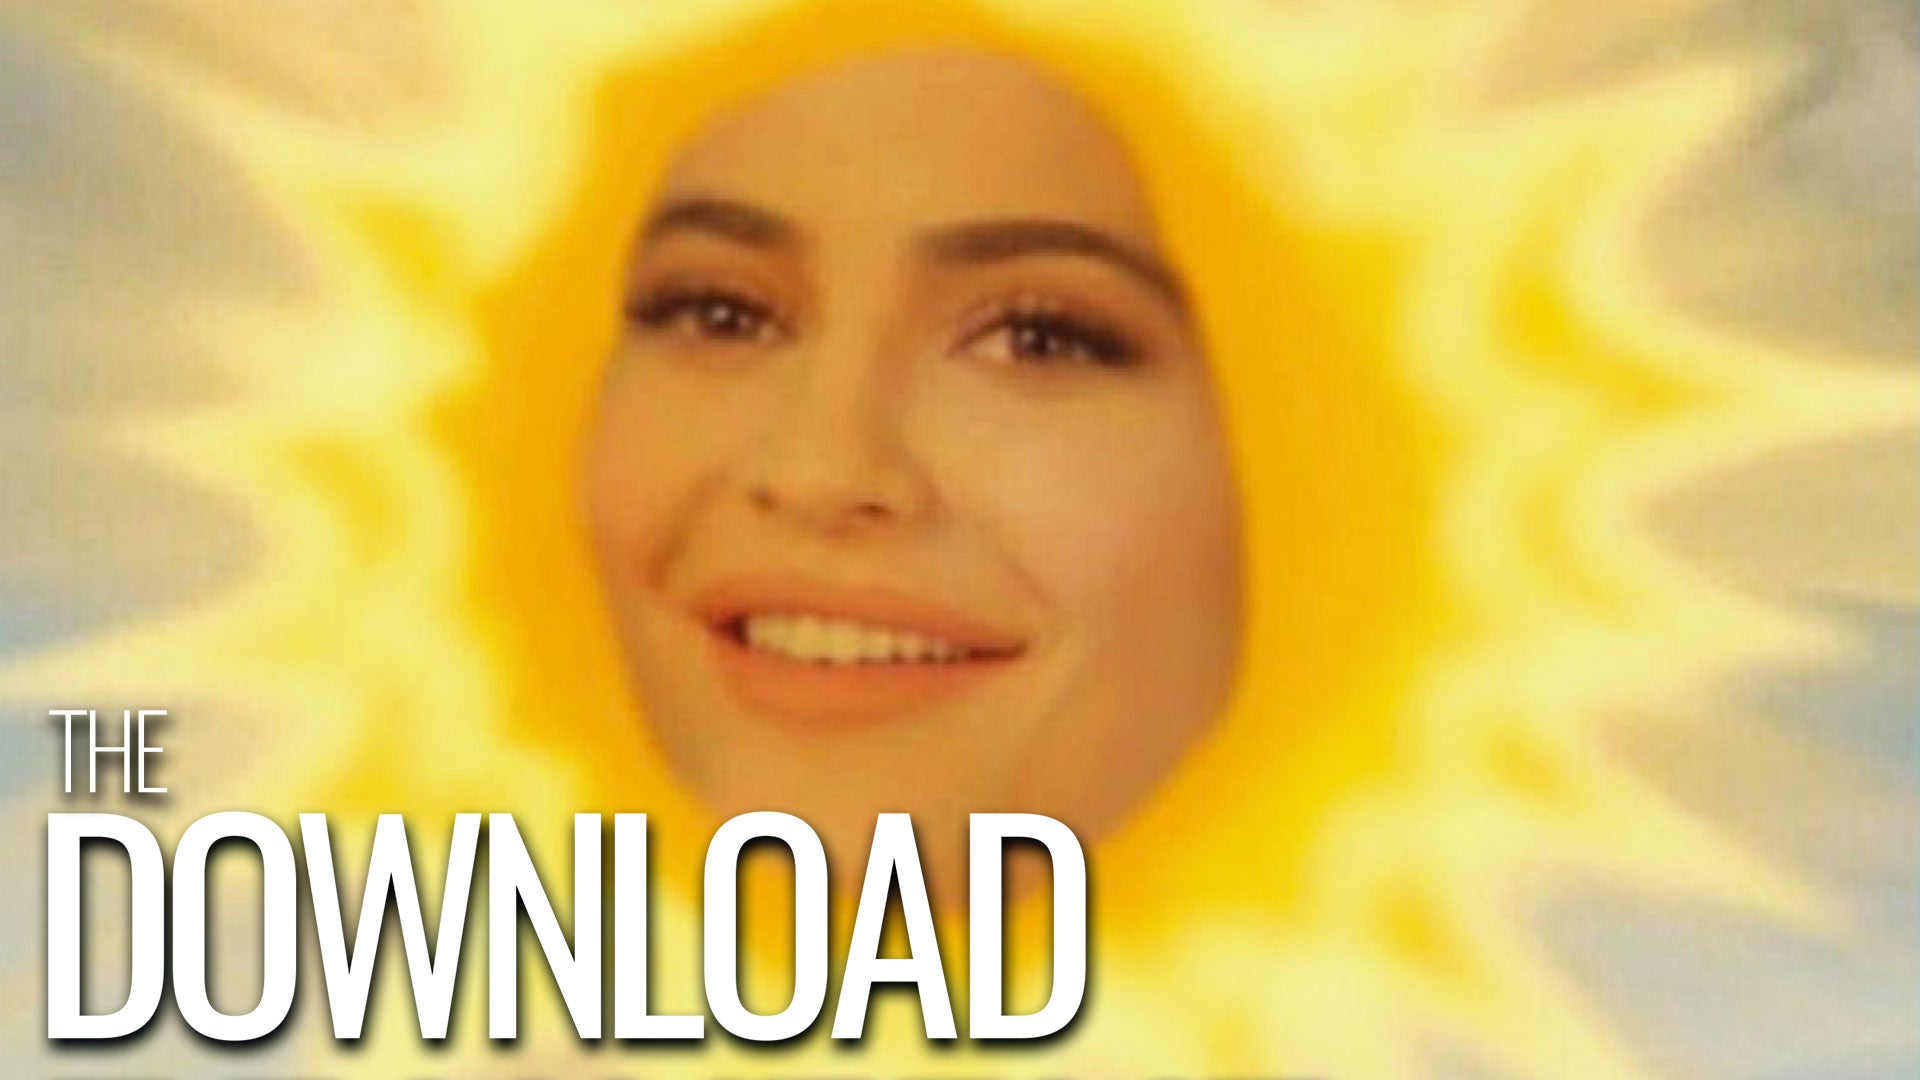 Kylie Jenner's 'Rise and Shine' Is the Meme of the Moment -- Check Out the Remixes, Merch and More!